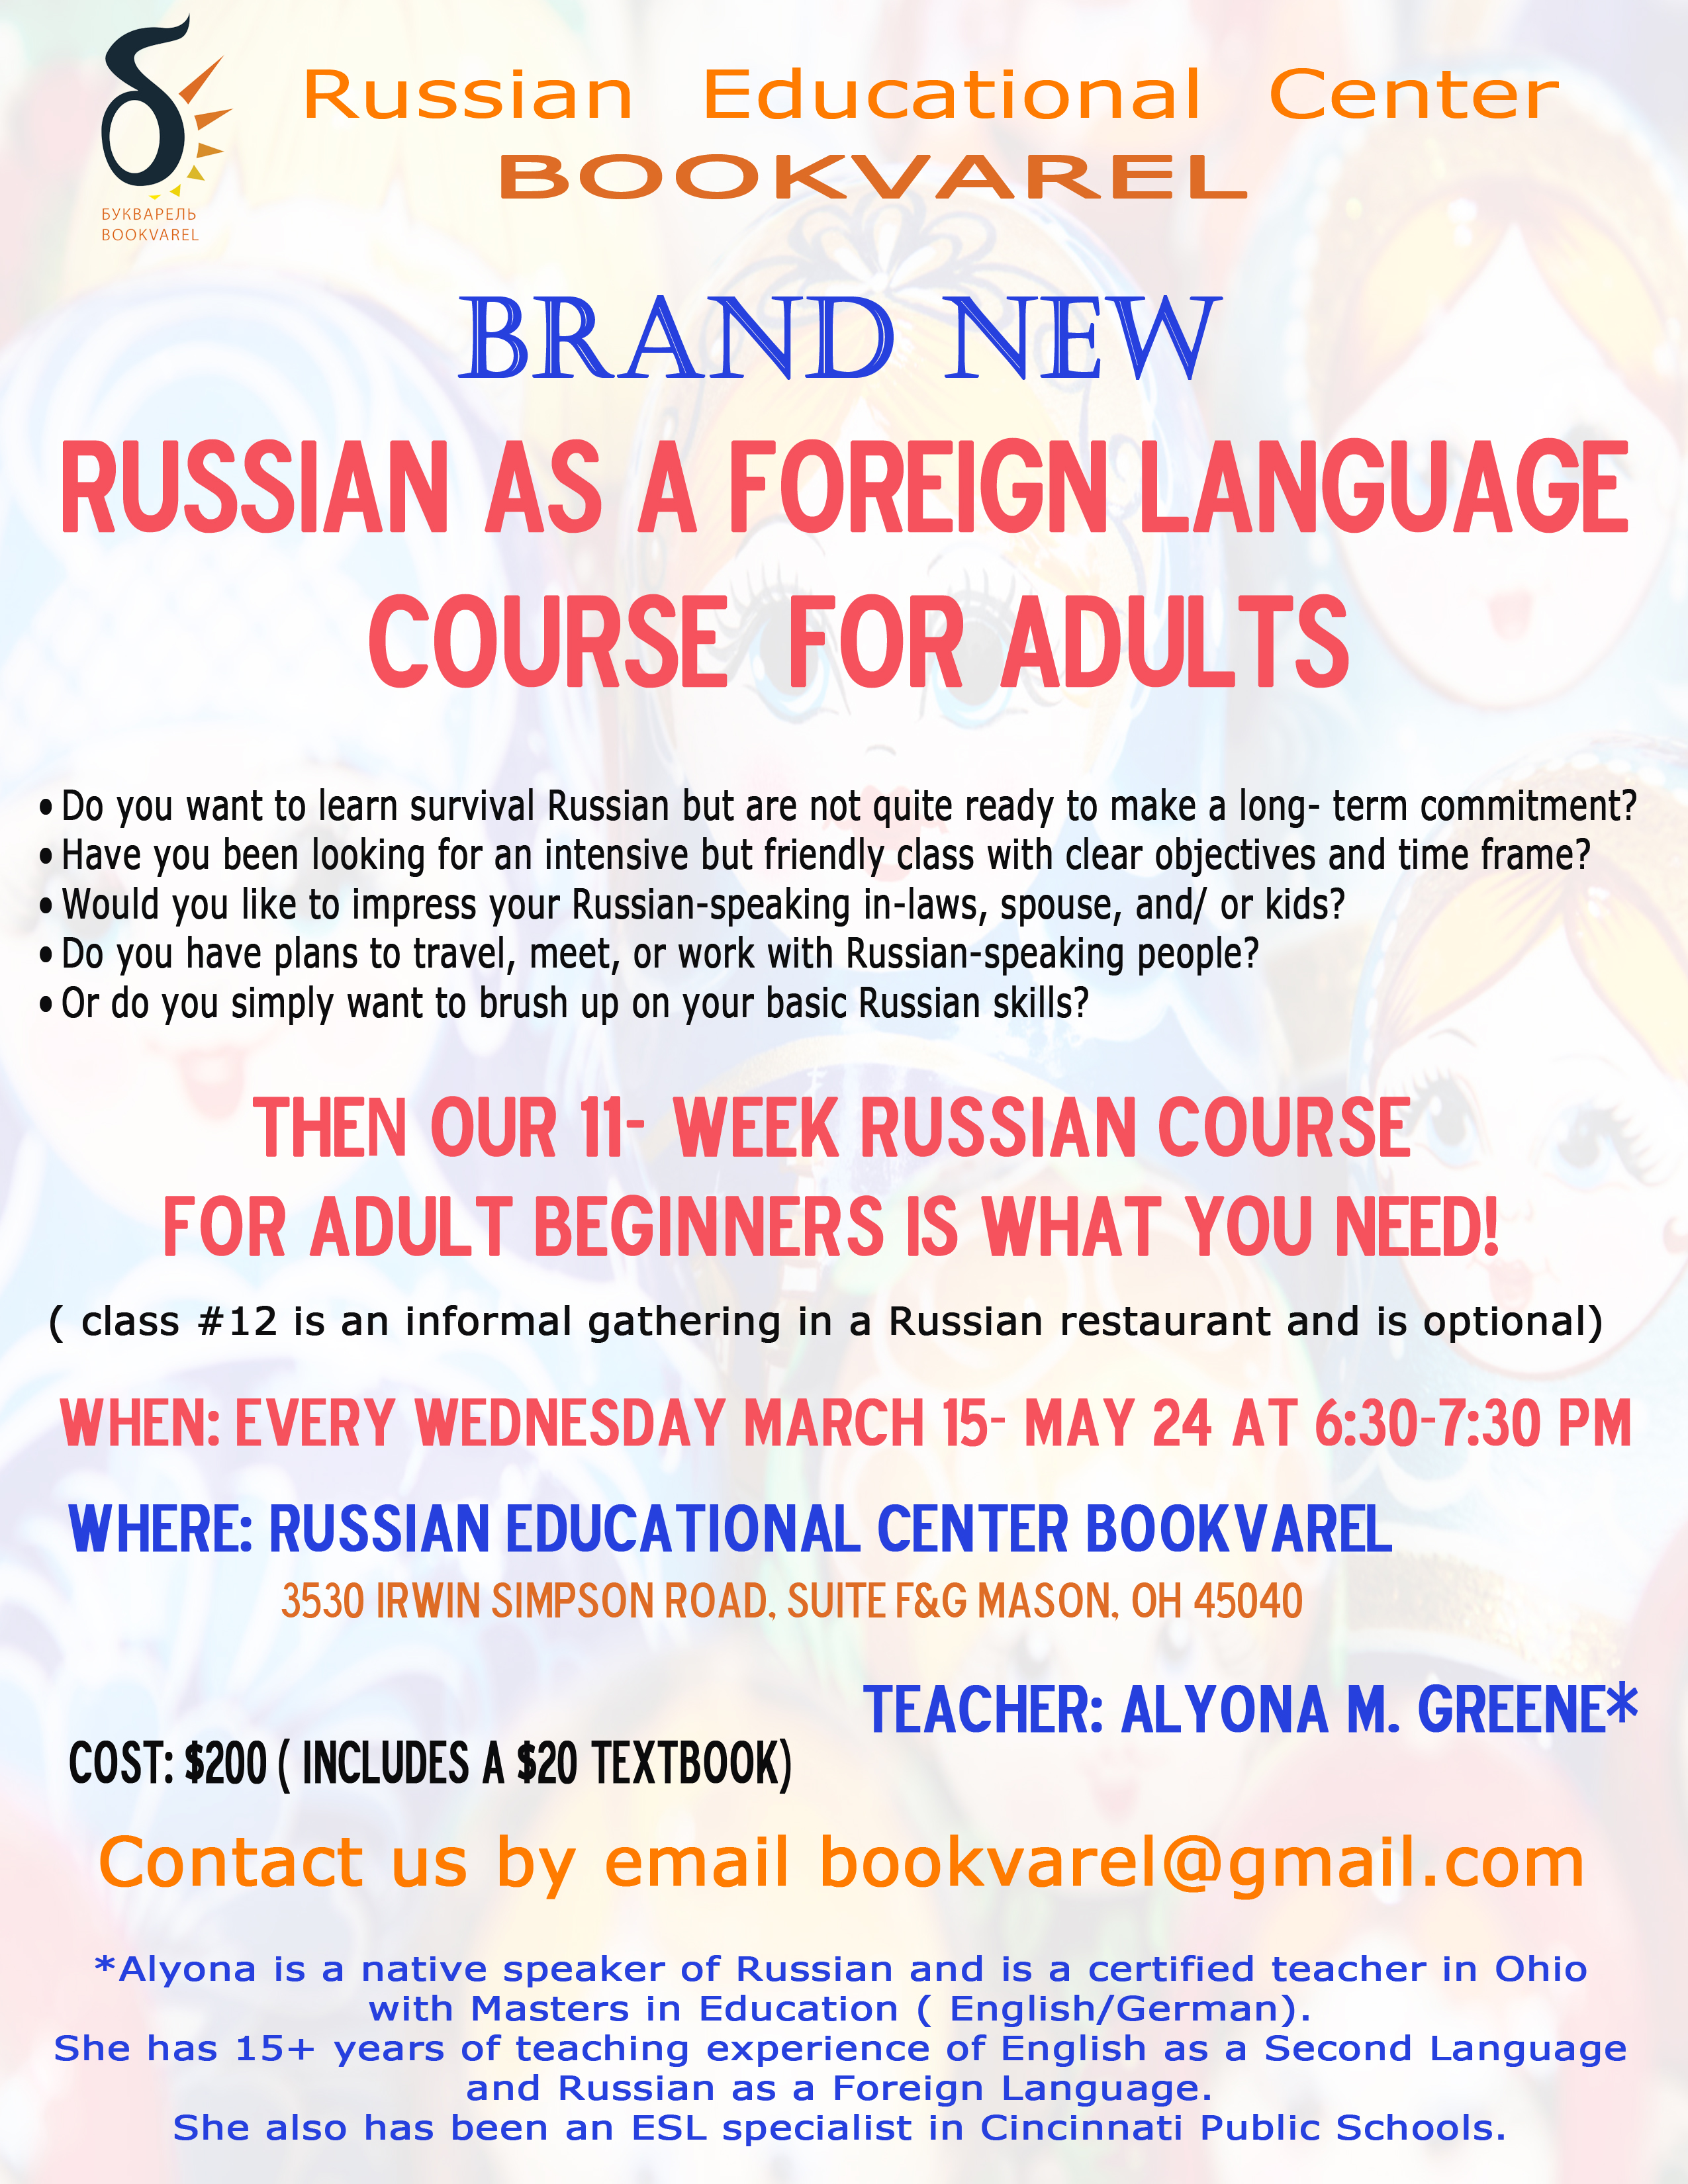 During Your Russian Course Why